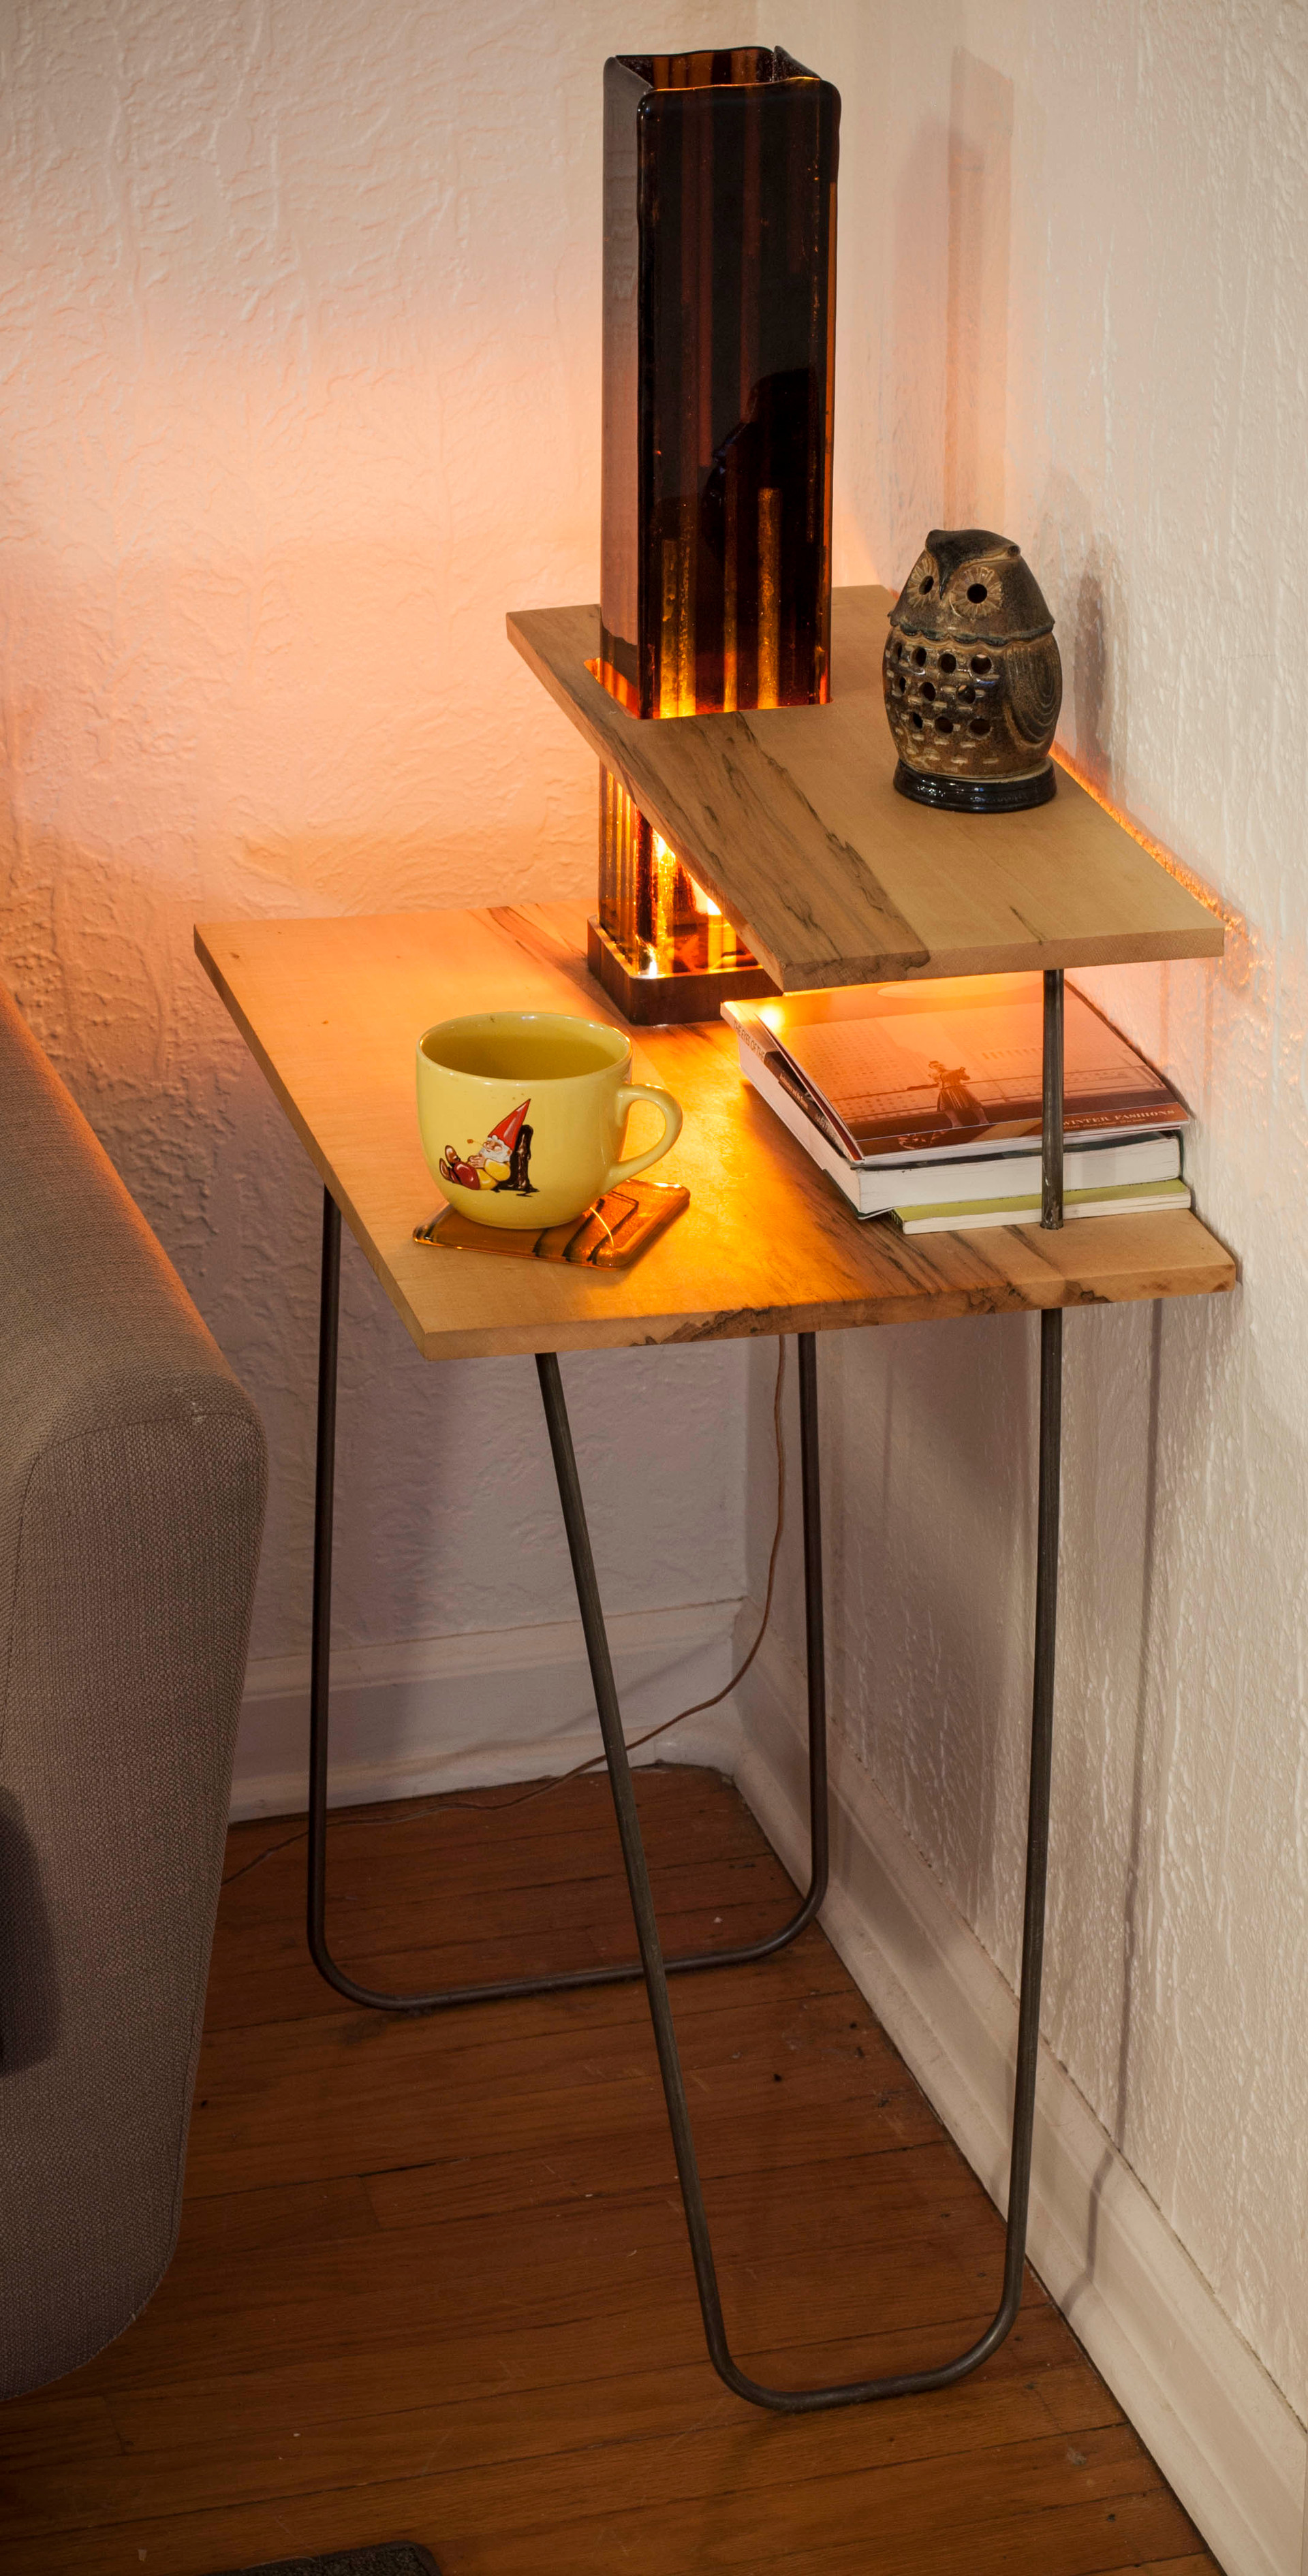 End Table in Use